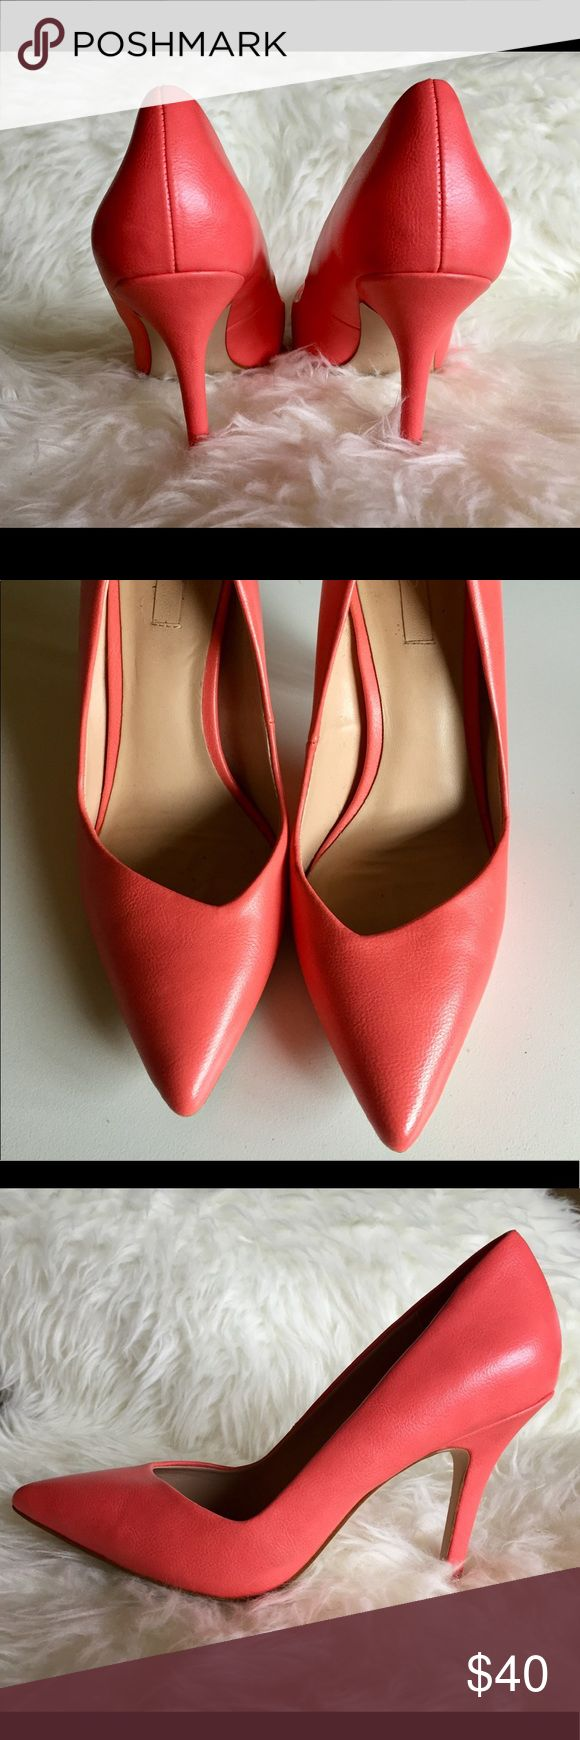 Pink Aldo Heels Playful and colorful Aldo heels with asymmetric opening. Adds great contrast to an all black or neutral outfit and very comfortable! Aldo Shoes Heels